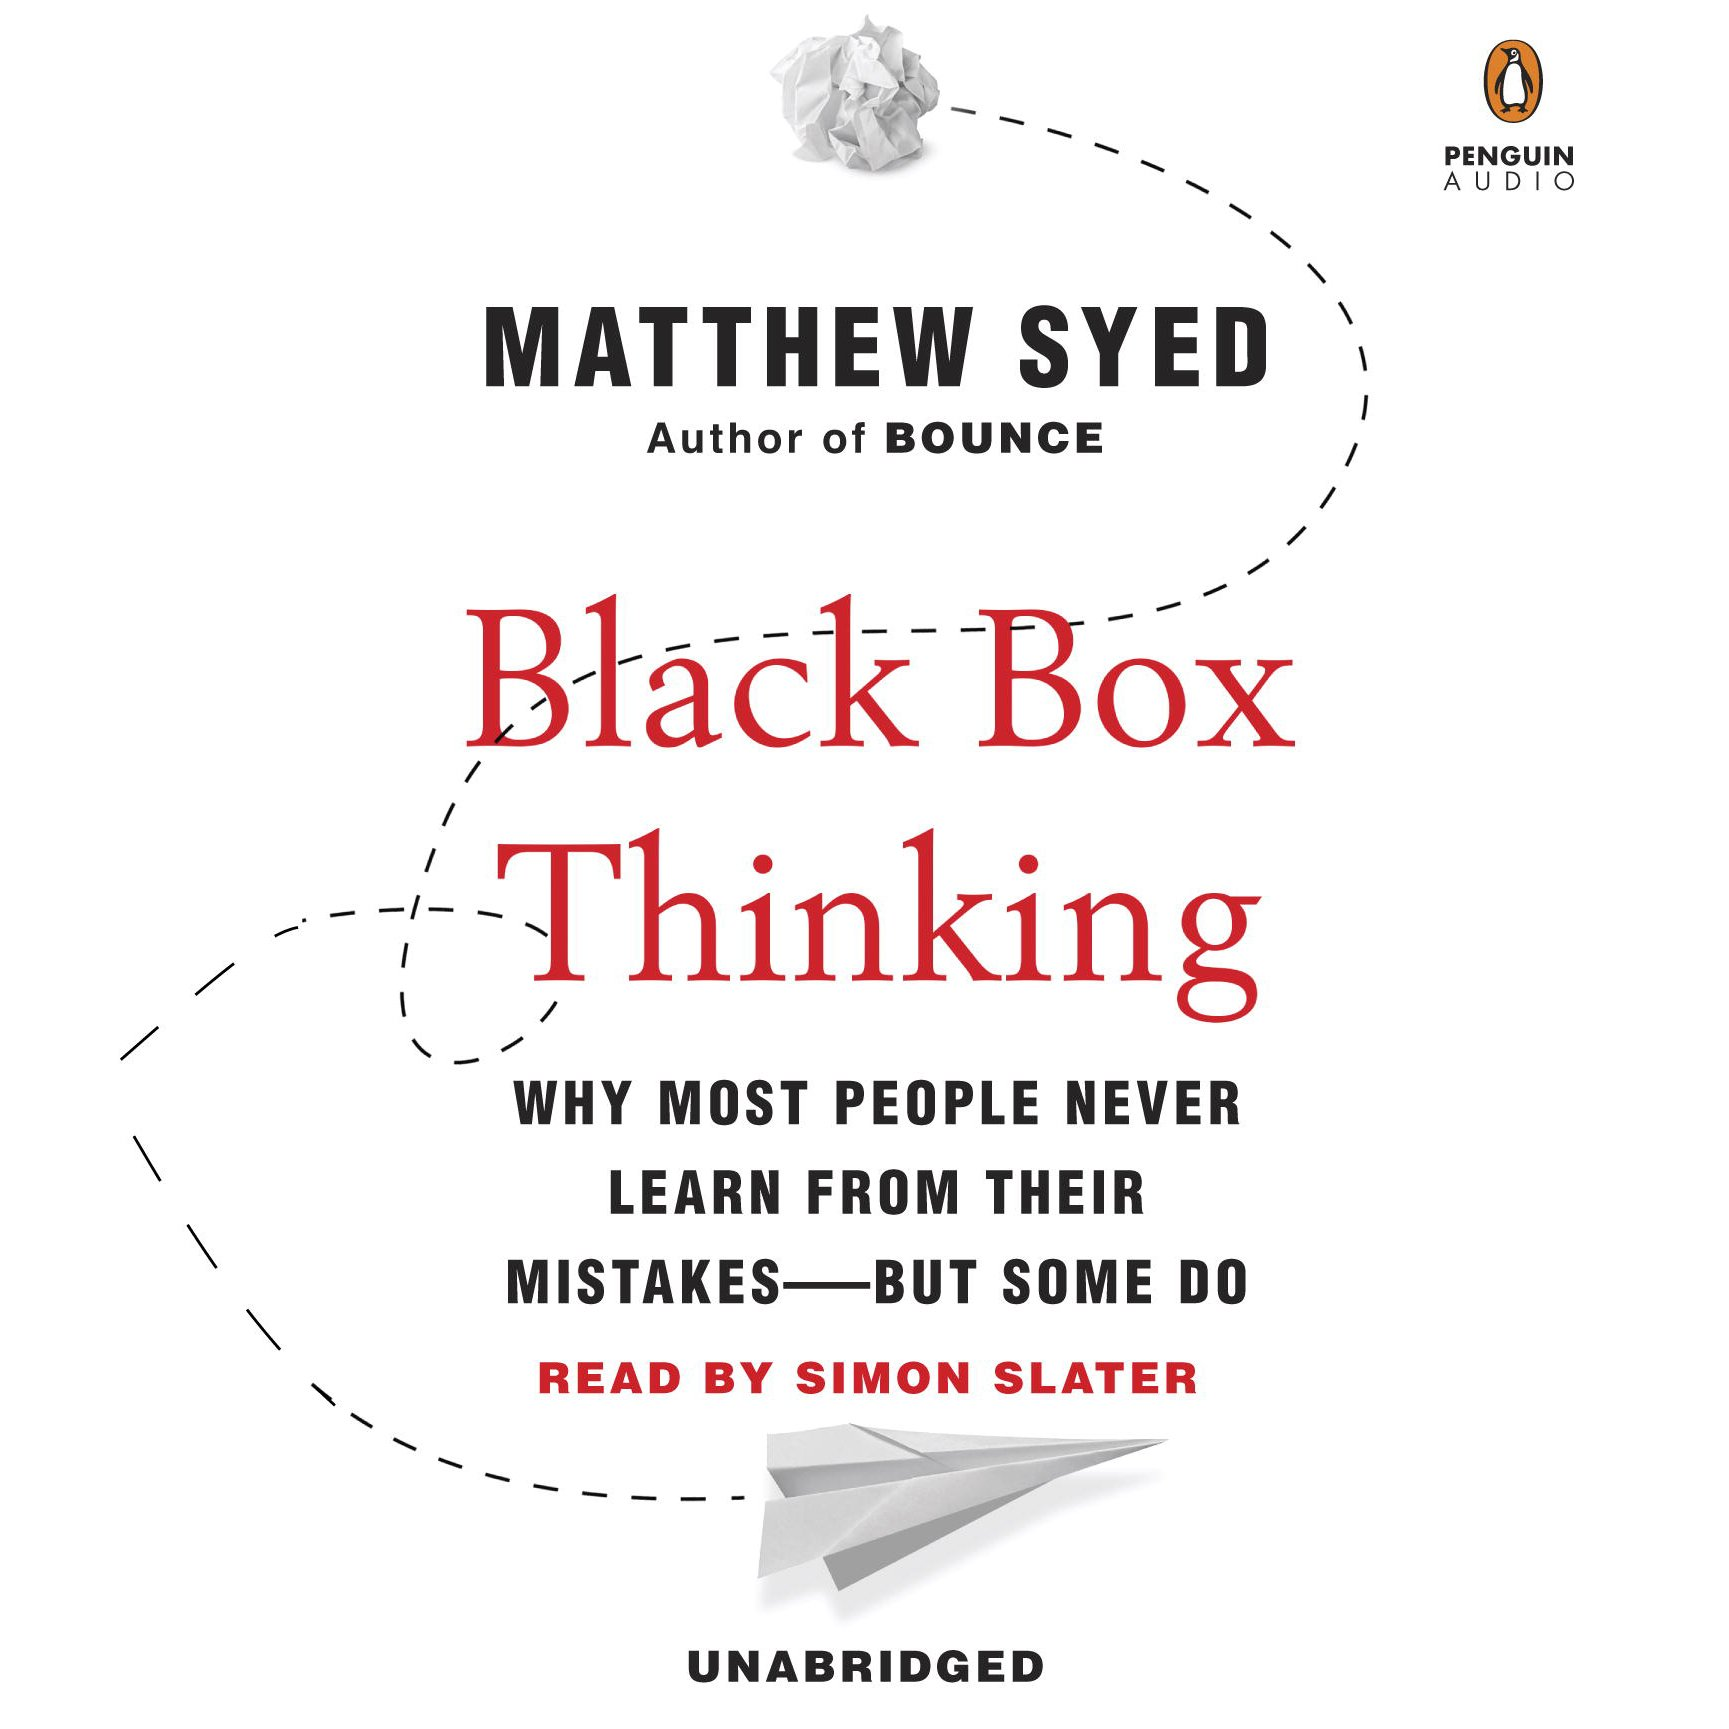 Black Box Thinking: Why Most People Never Learn from Their Mistakes - But Some Do